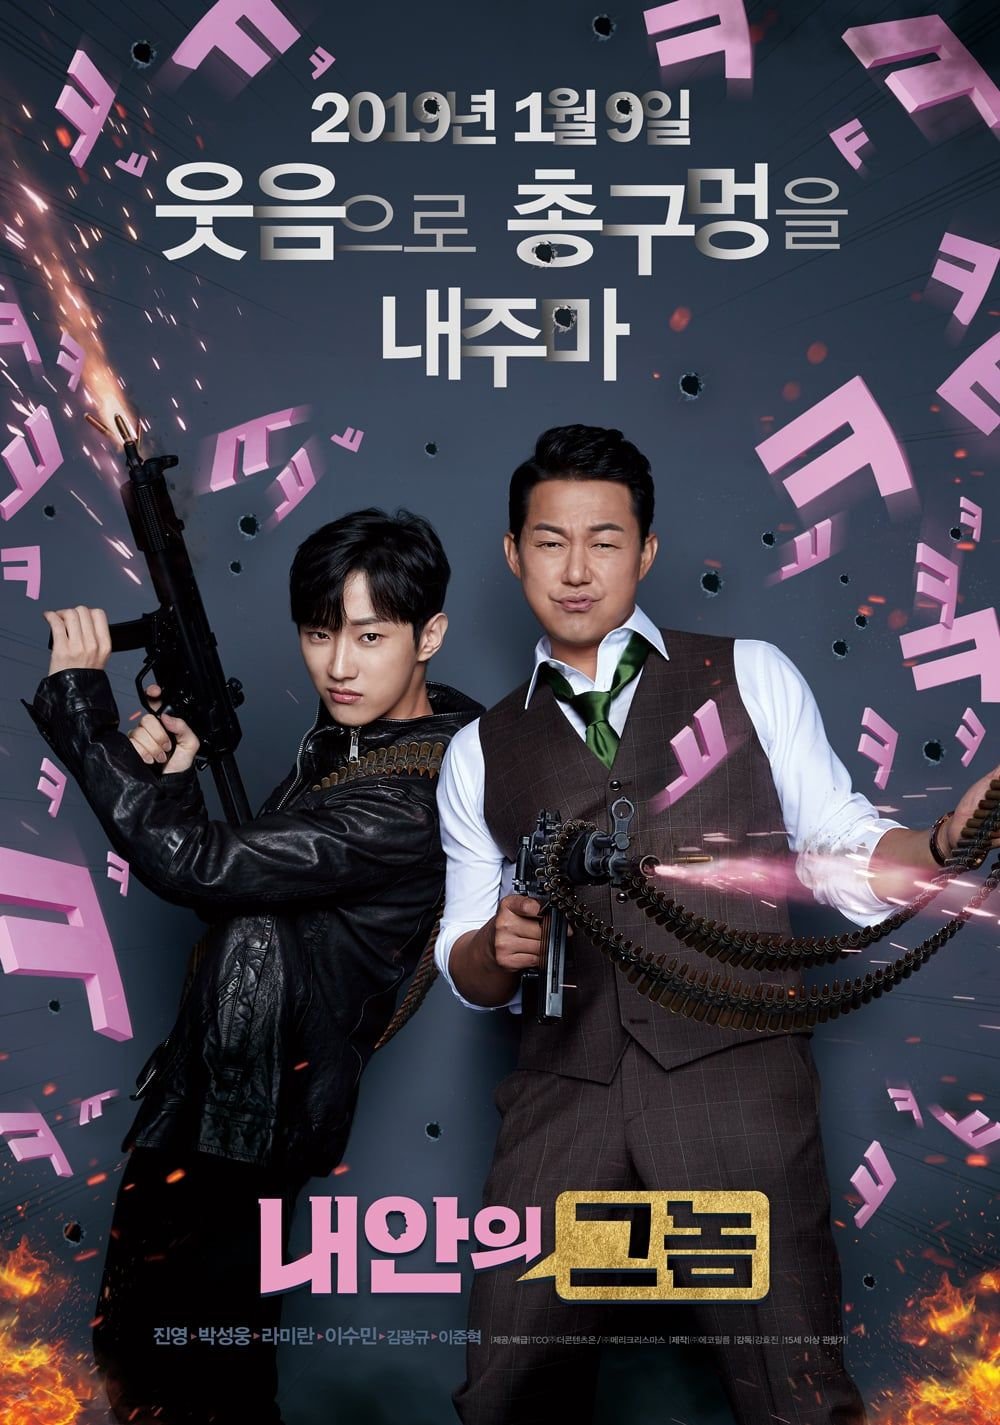 Watch Online The Dude In Me 2019 Full Hd Movie In Official Online Eng Sub Korean Drama Tv Korean Drama Park Sung Woong